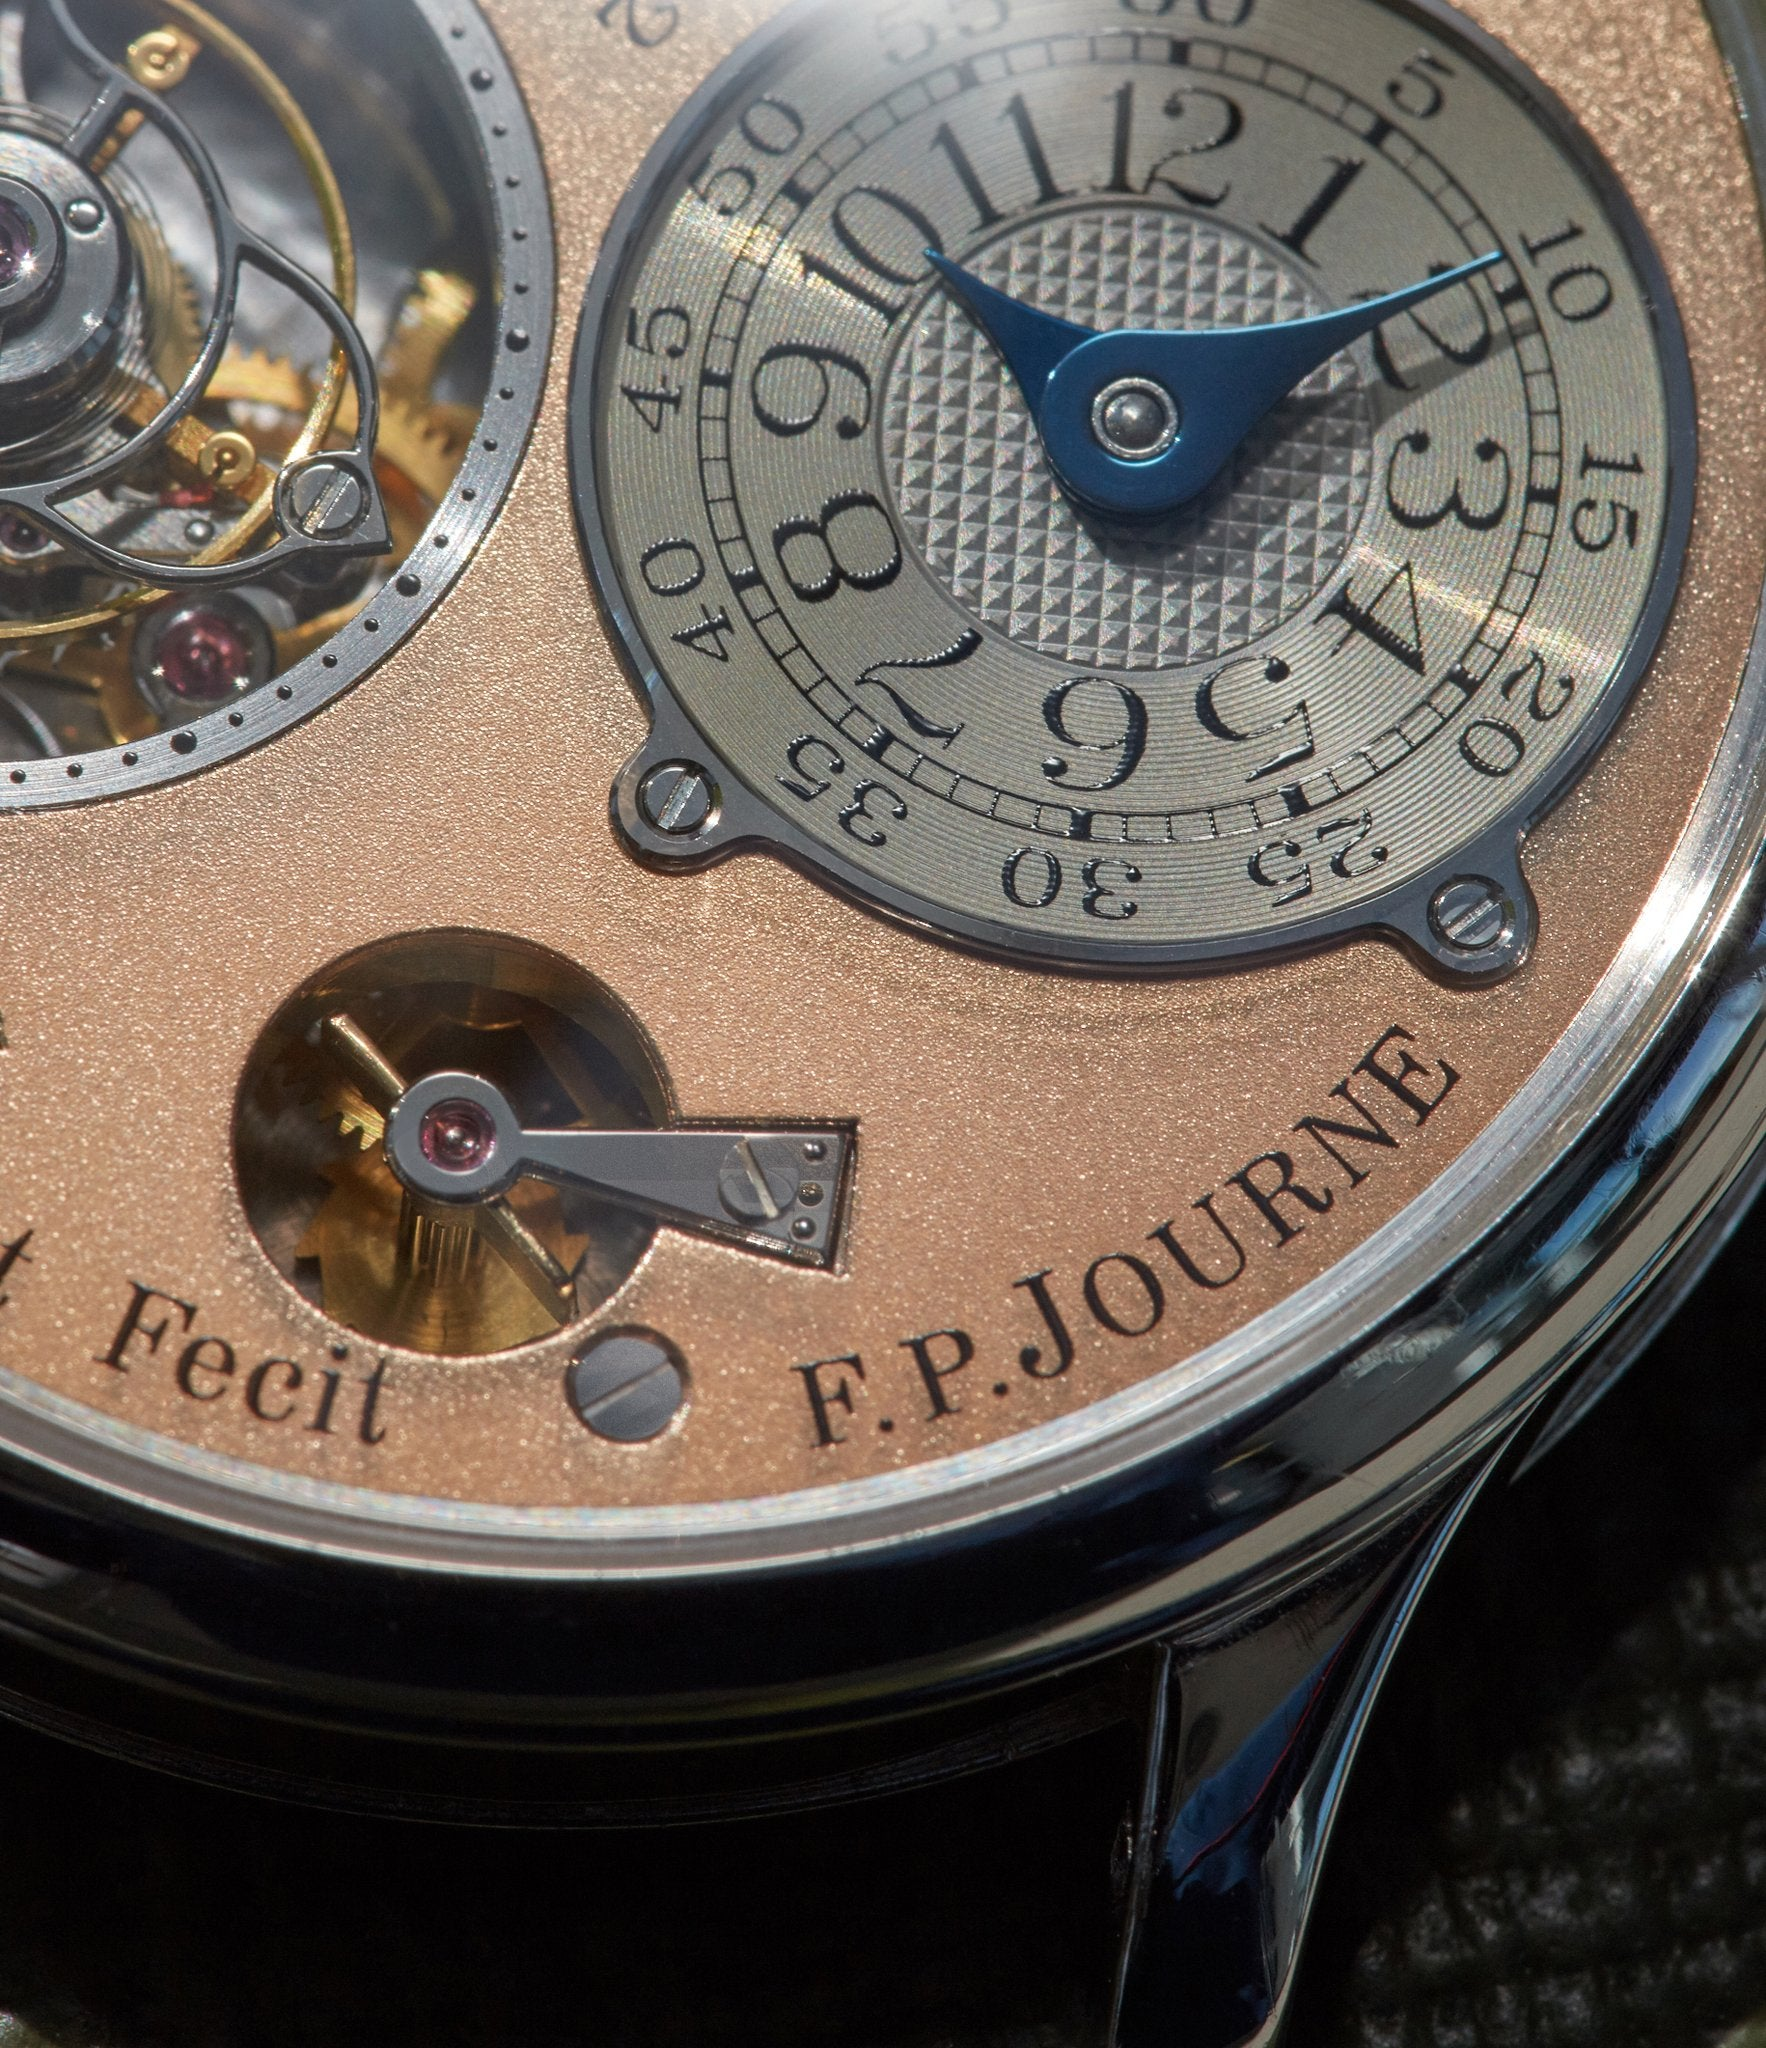 F.P. Journe Tourbillon remontoire macro in Chasing Accuracy in Mechanical Wristwatches for A Collected Man London